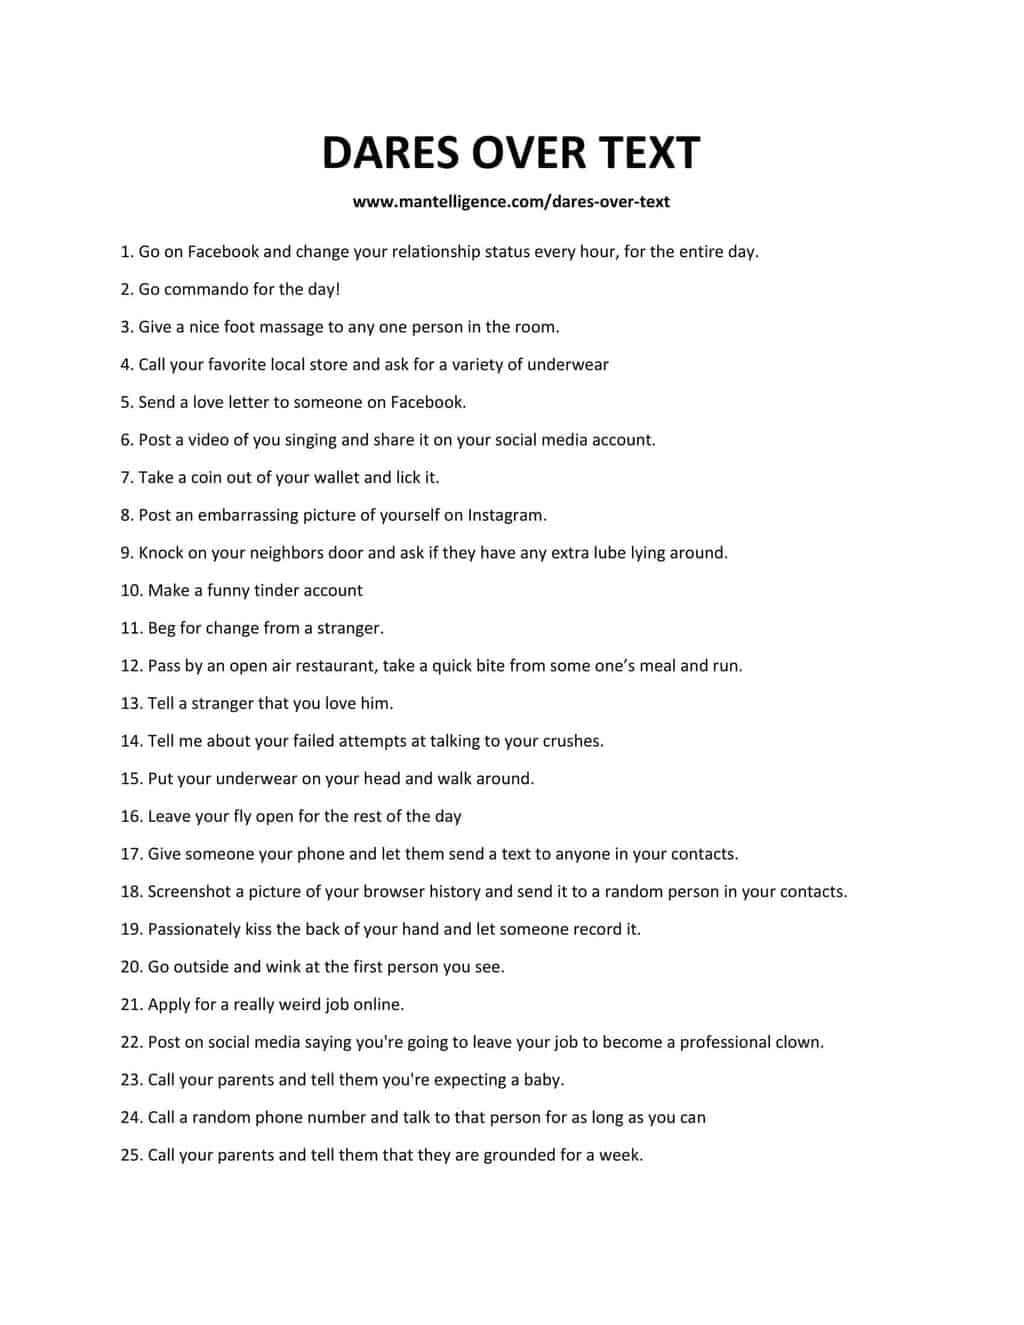 25 Dares Over Text - List of Dares Over Text